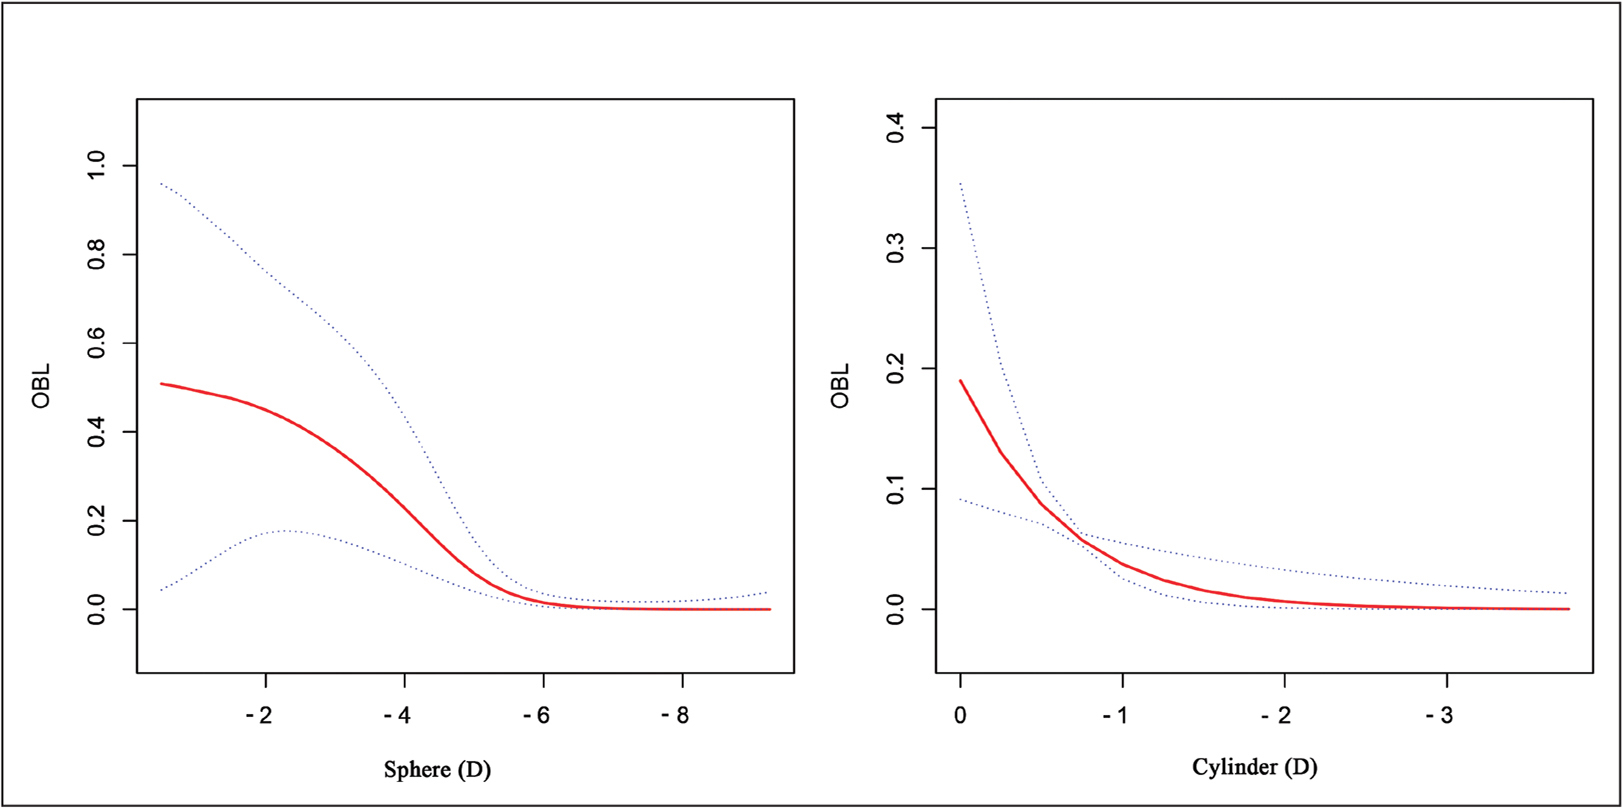 The smooth curve fitting showed the association between opaque bubble layer (OBL) and myopia and astigmatism diopter after adjusting the relative confounding factors, which were central corneal thickness, astigmatism, gender, flat keratometry, and age for myopia and central corneal thickness, myopia, axial direction, energy, and age for astigmatism. Dotted lines represented the upper and lower 95% confidence intervals. D = diopters